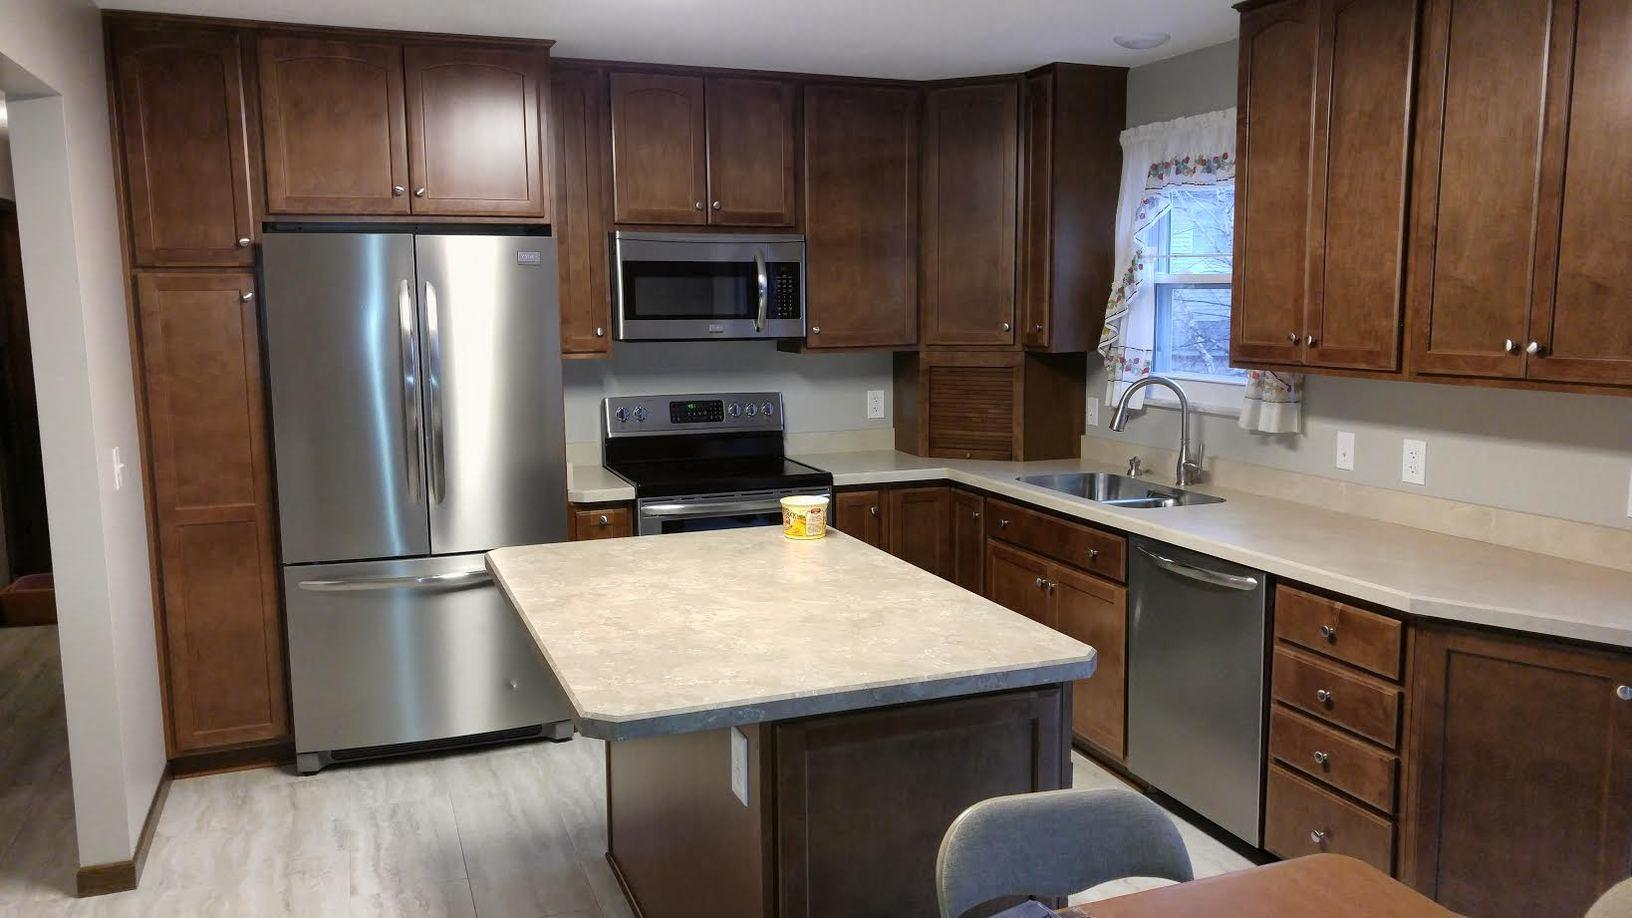 Kitchen Remodel in Maumee, Ohio - After Photo